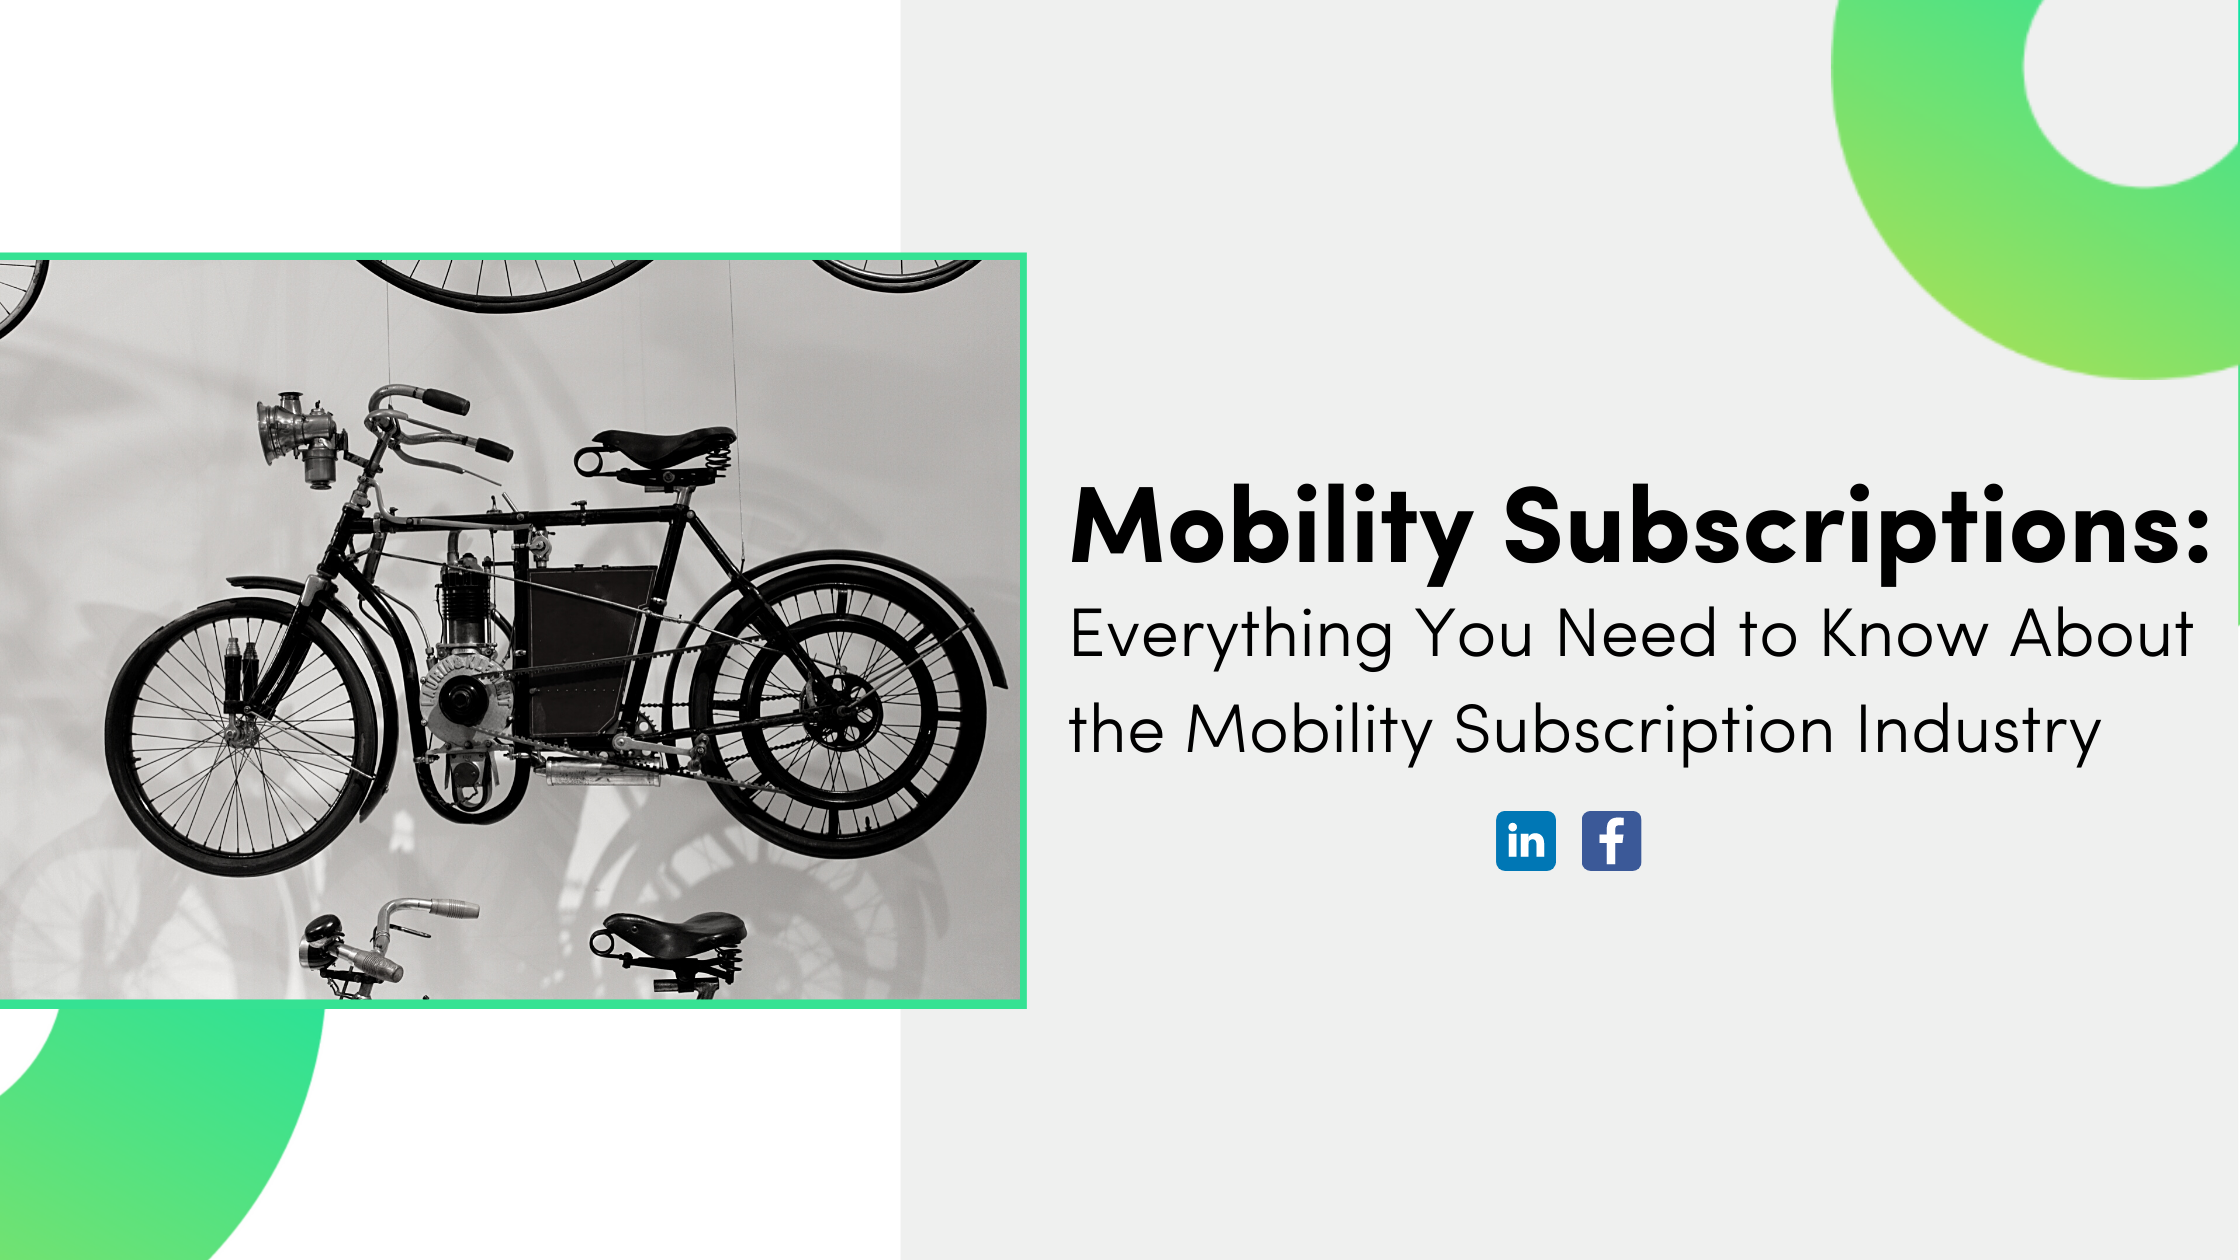 Mobility Subscriptions: Everything You Need to Know About the Mobility Subscription Industry